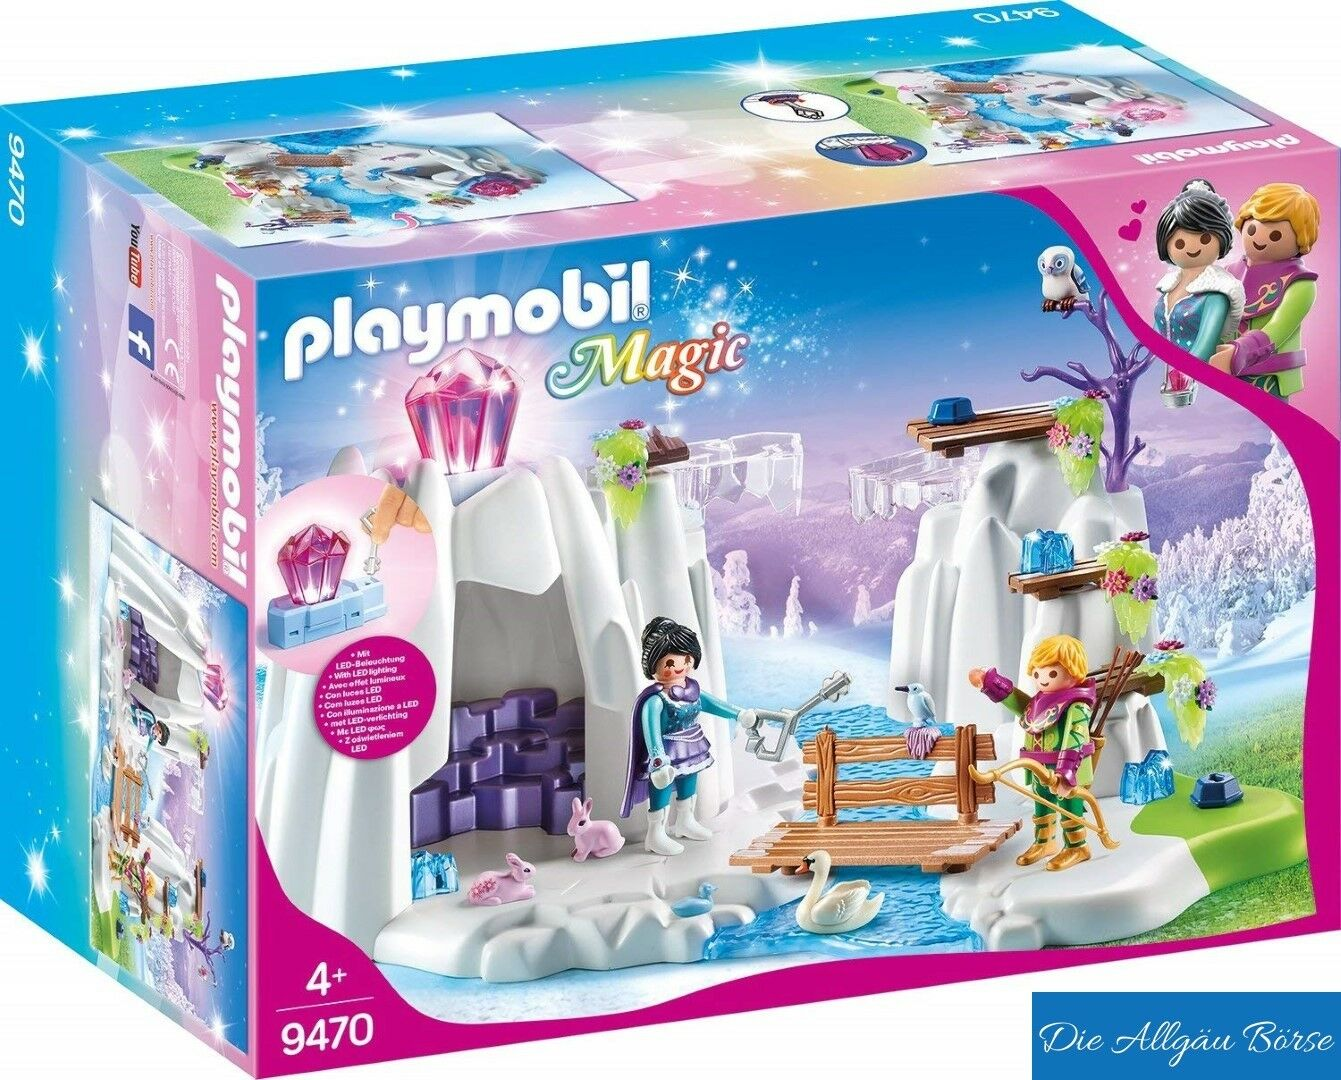 Playmobil 9470 Suche nach d. Liebeskristall Magic Elfe Fee Fee Fee Kristall Neu OVP dec7d9